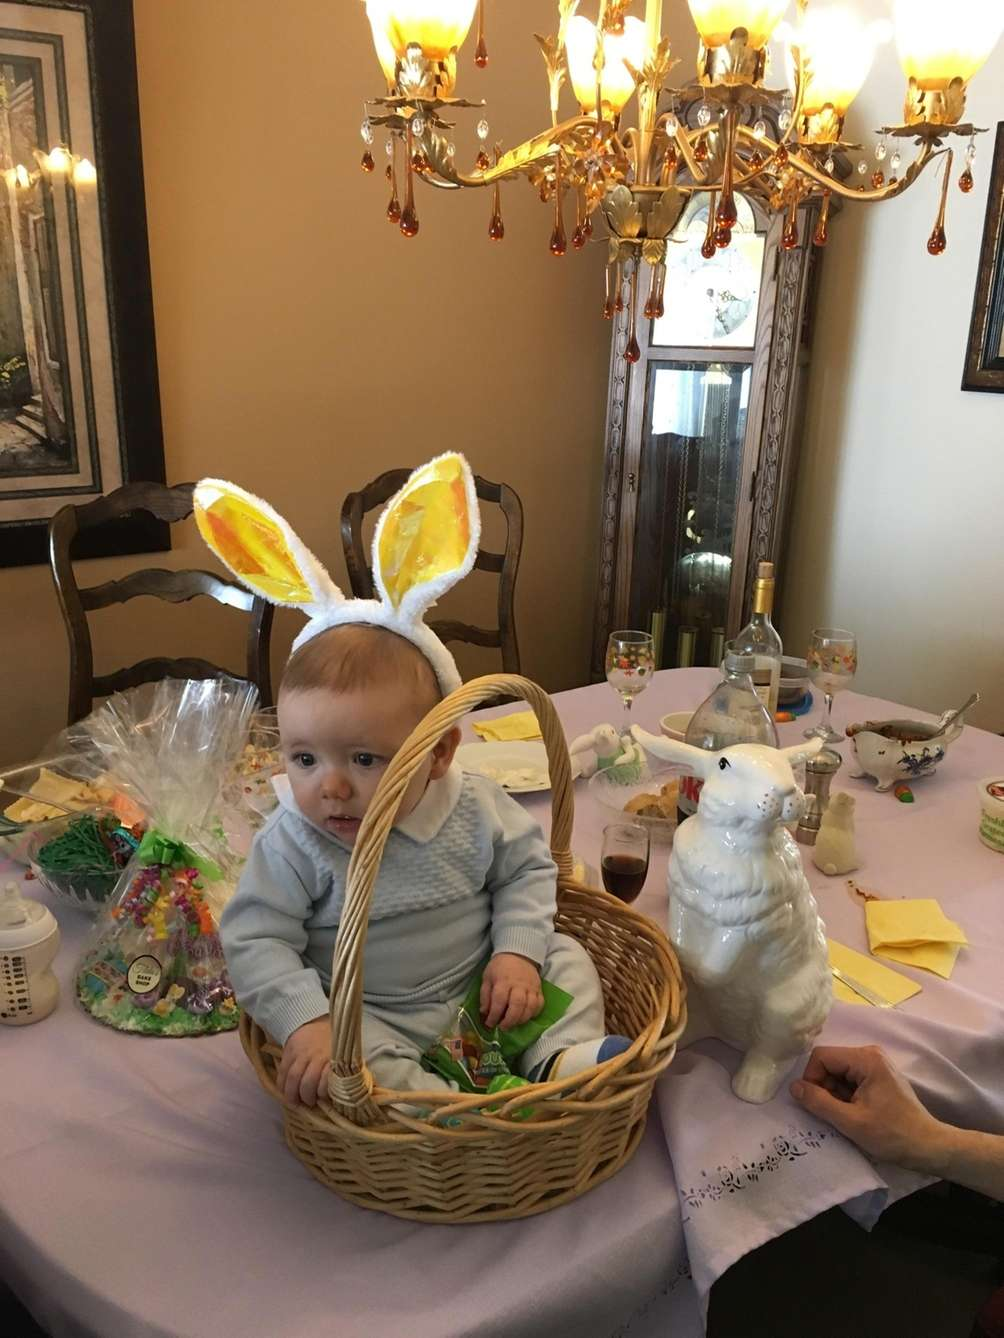 AJ, the little bunny on Palm Sunday at